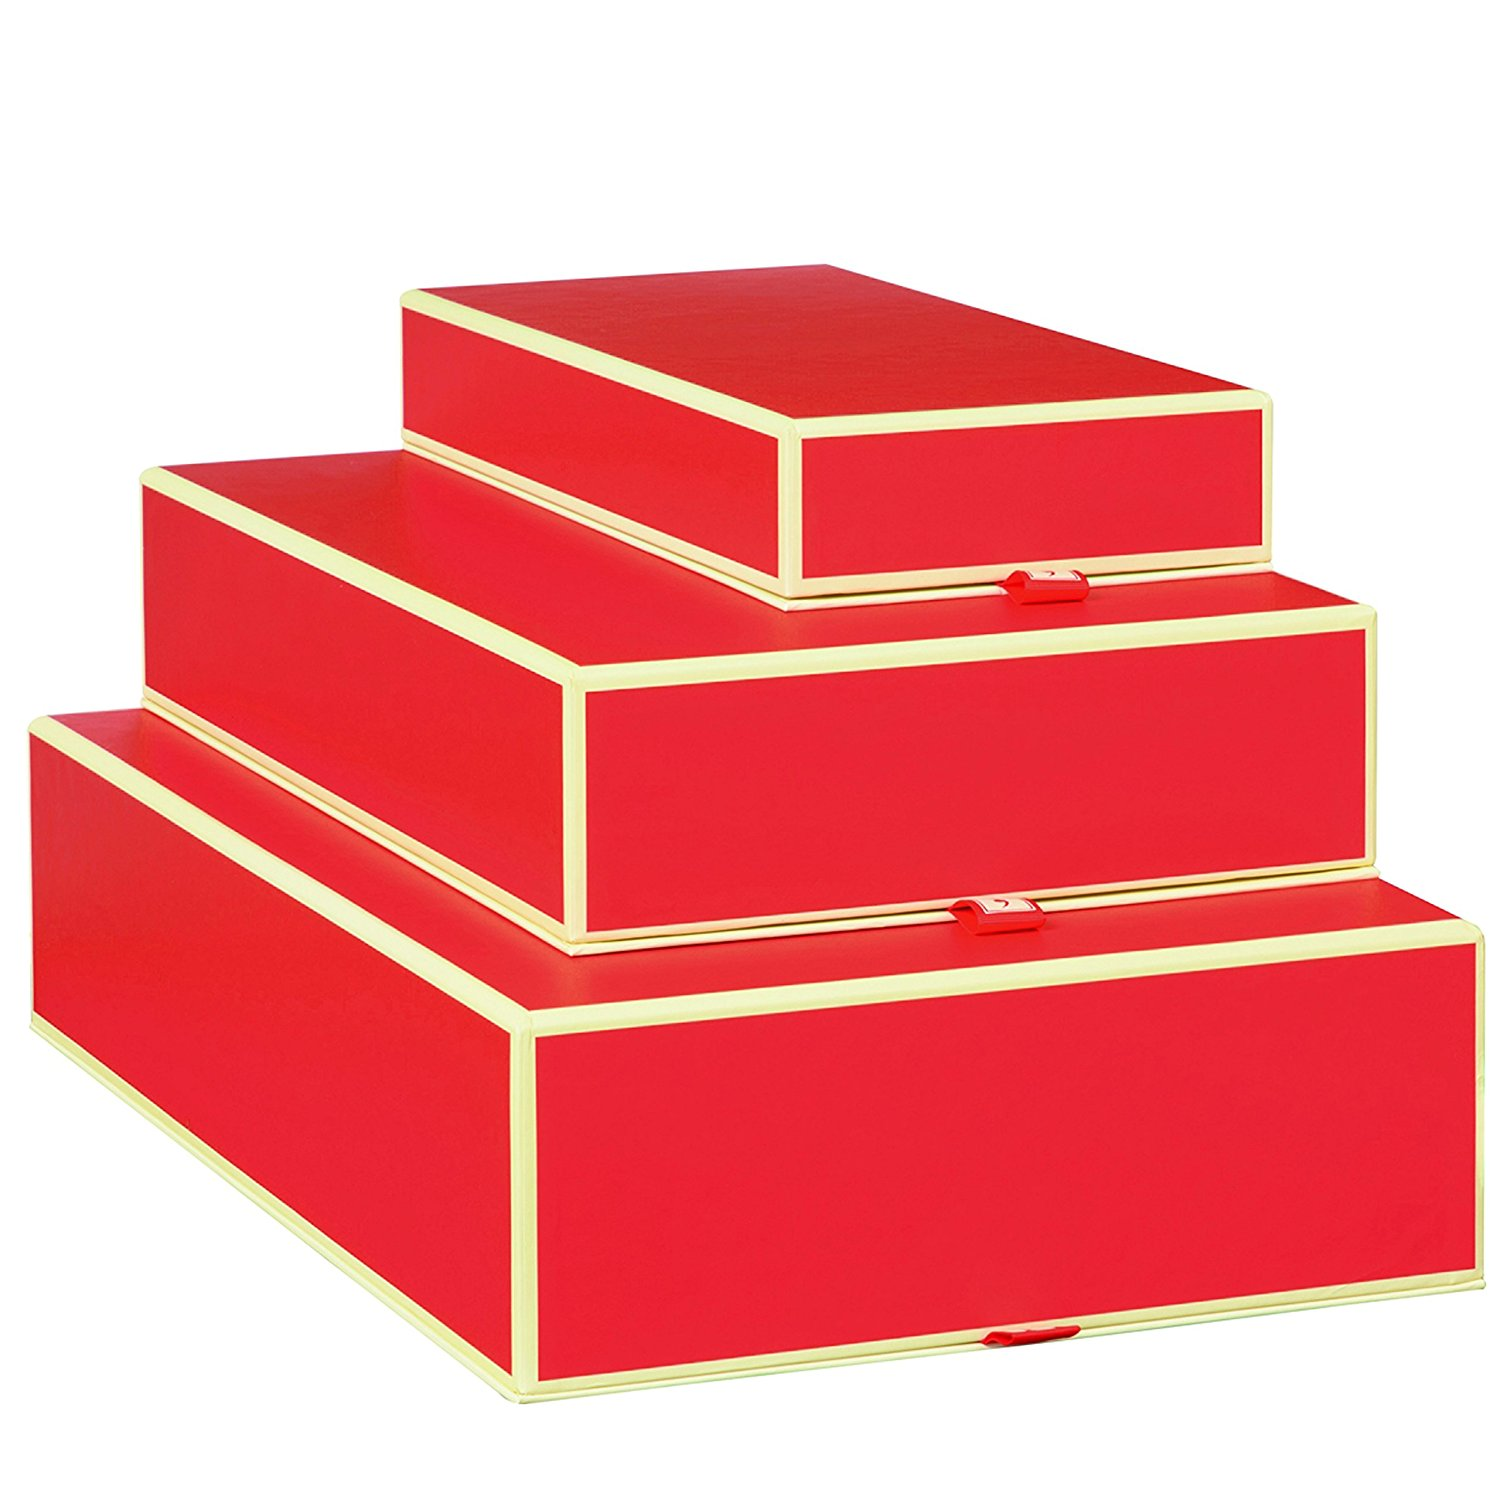 Set of 3 rectangular boxes red +++ STORAGE- or GIFT BOXES +++ Quality made by Semikolon